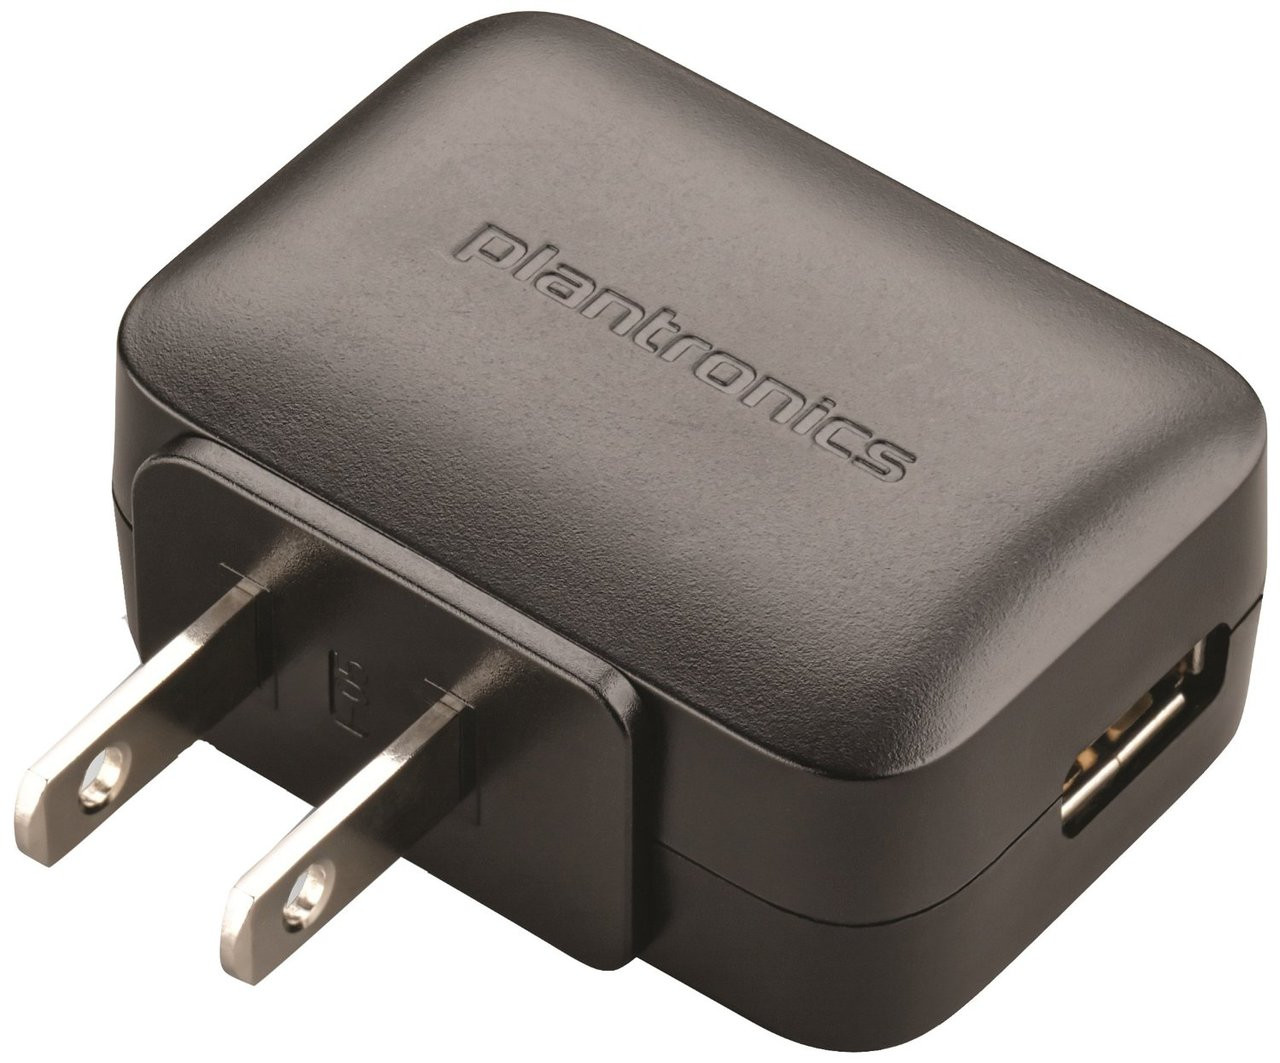 Plantronics Ac Adapter Global Power Supply For Plantronics Wireless Headsets Savi And Cs500 Series 81423 01 Universal Connectors V110 V240 Us Eu Uk Africa Asia Australia